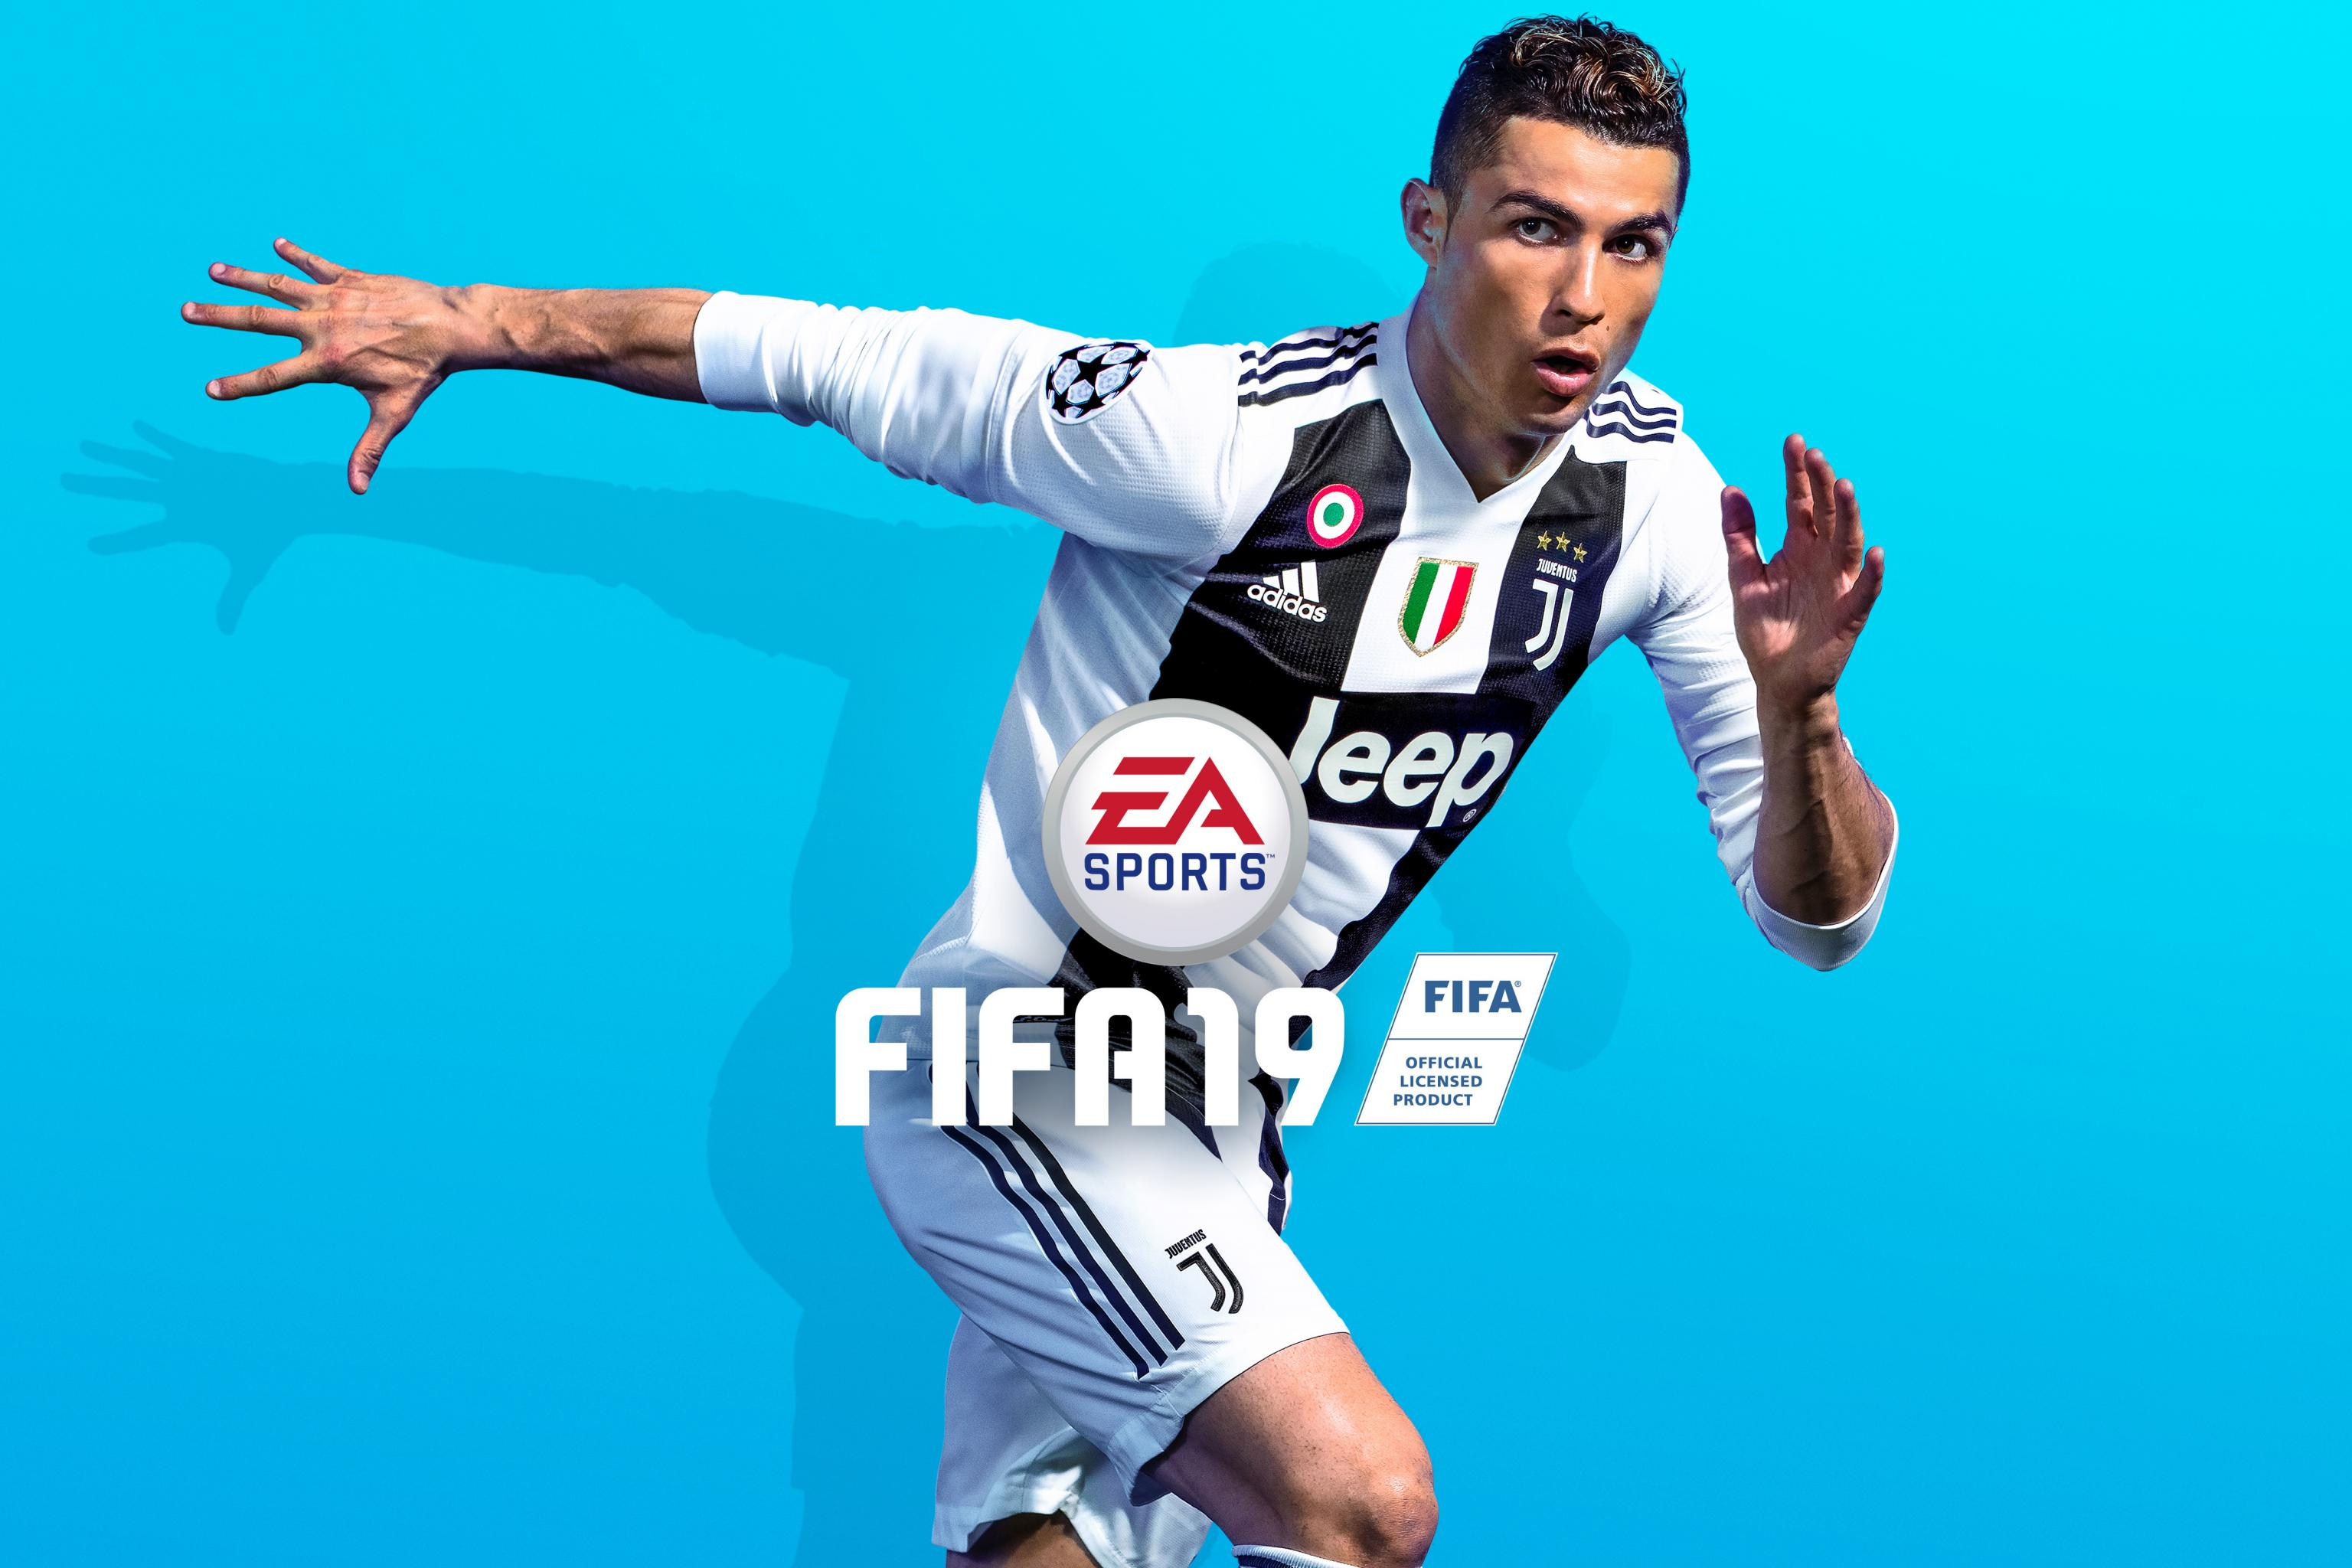 Saludo Al aire libre Aplaudir  FIFA 19 Review, Gameplay Videos, Features and Impressions | Bleacher Report  | Latest News, Videos and Highlights